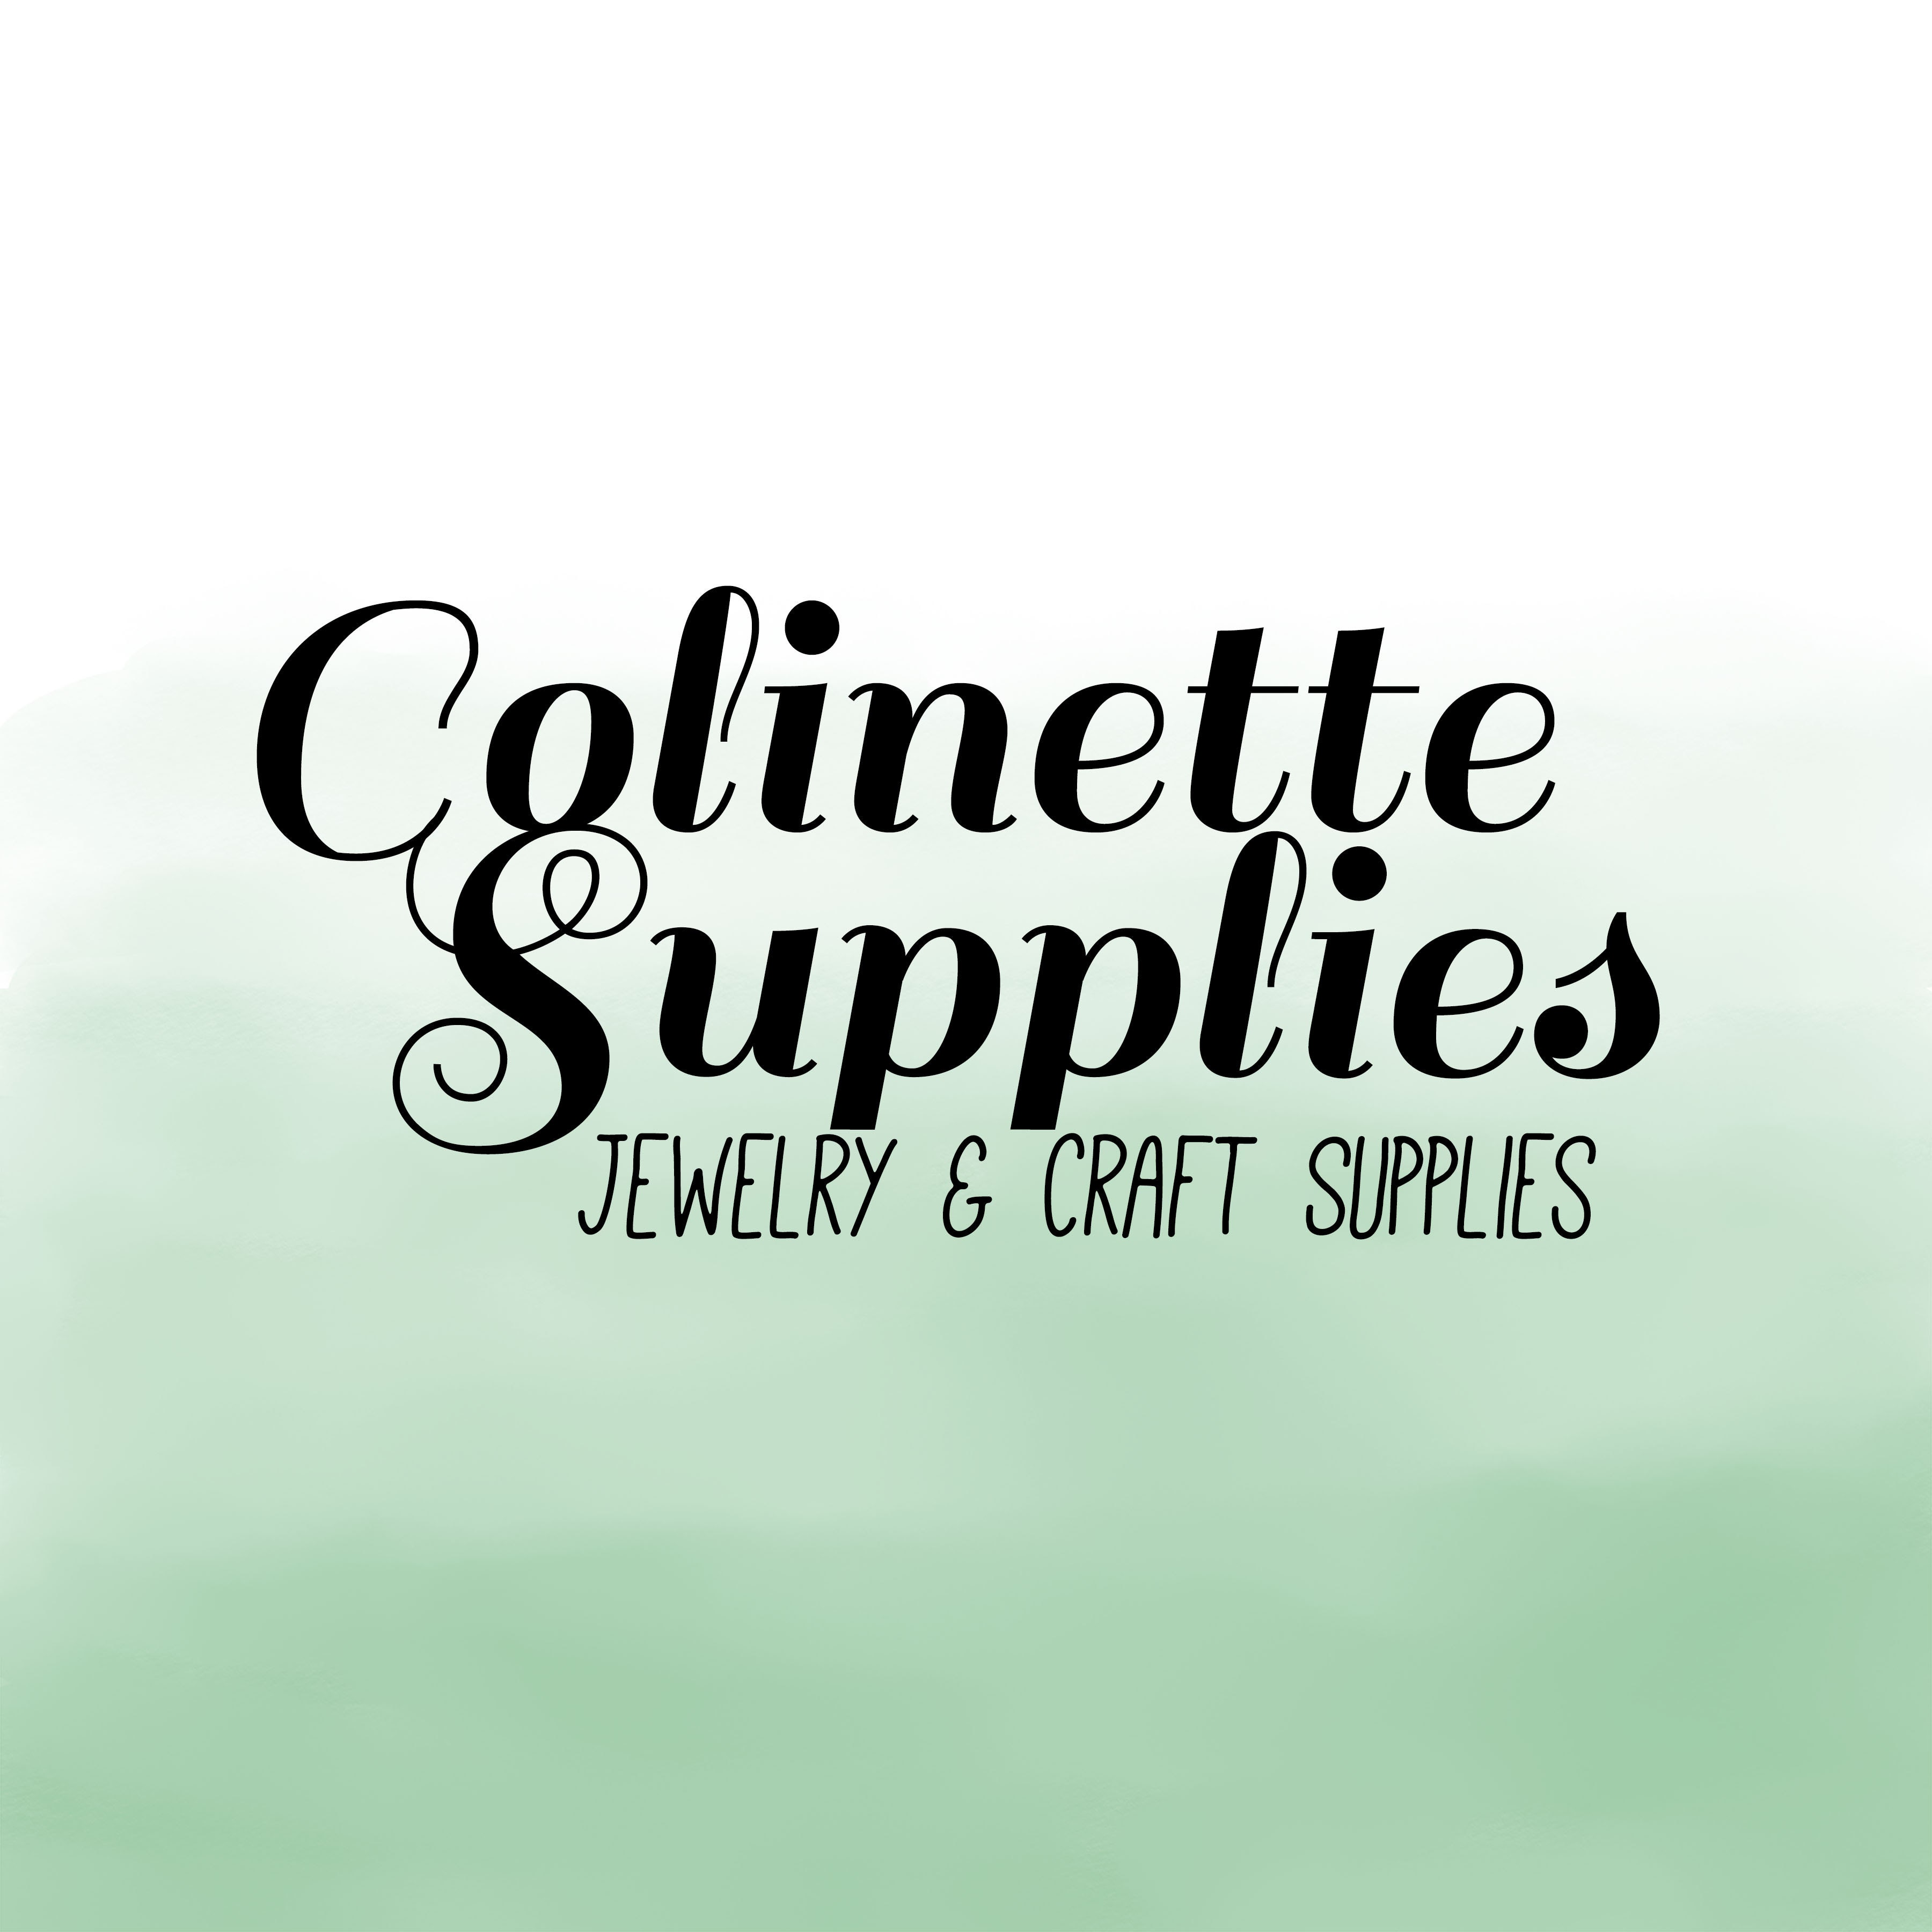 ColinetteSupplies